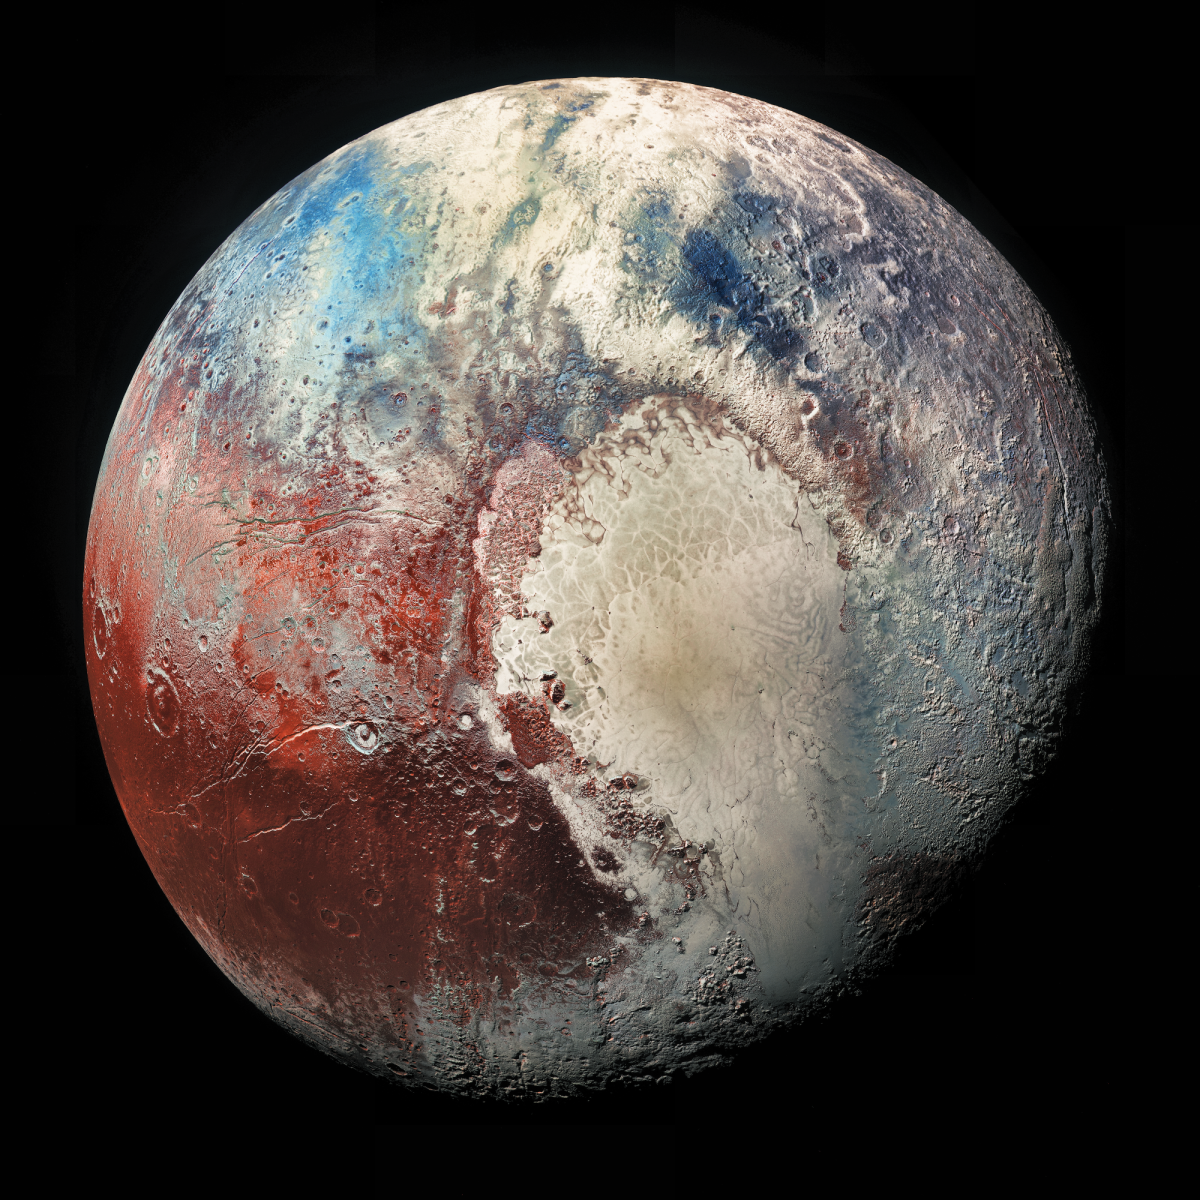 In 2006, Pluto was reclassified as a dwarf planet.